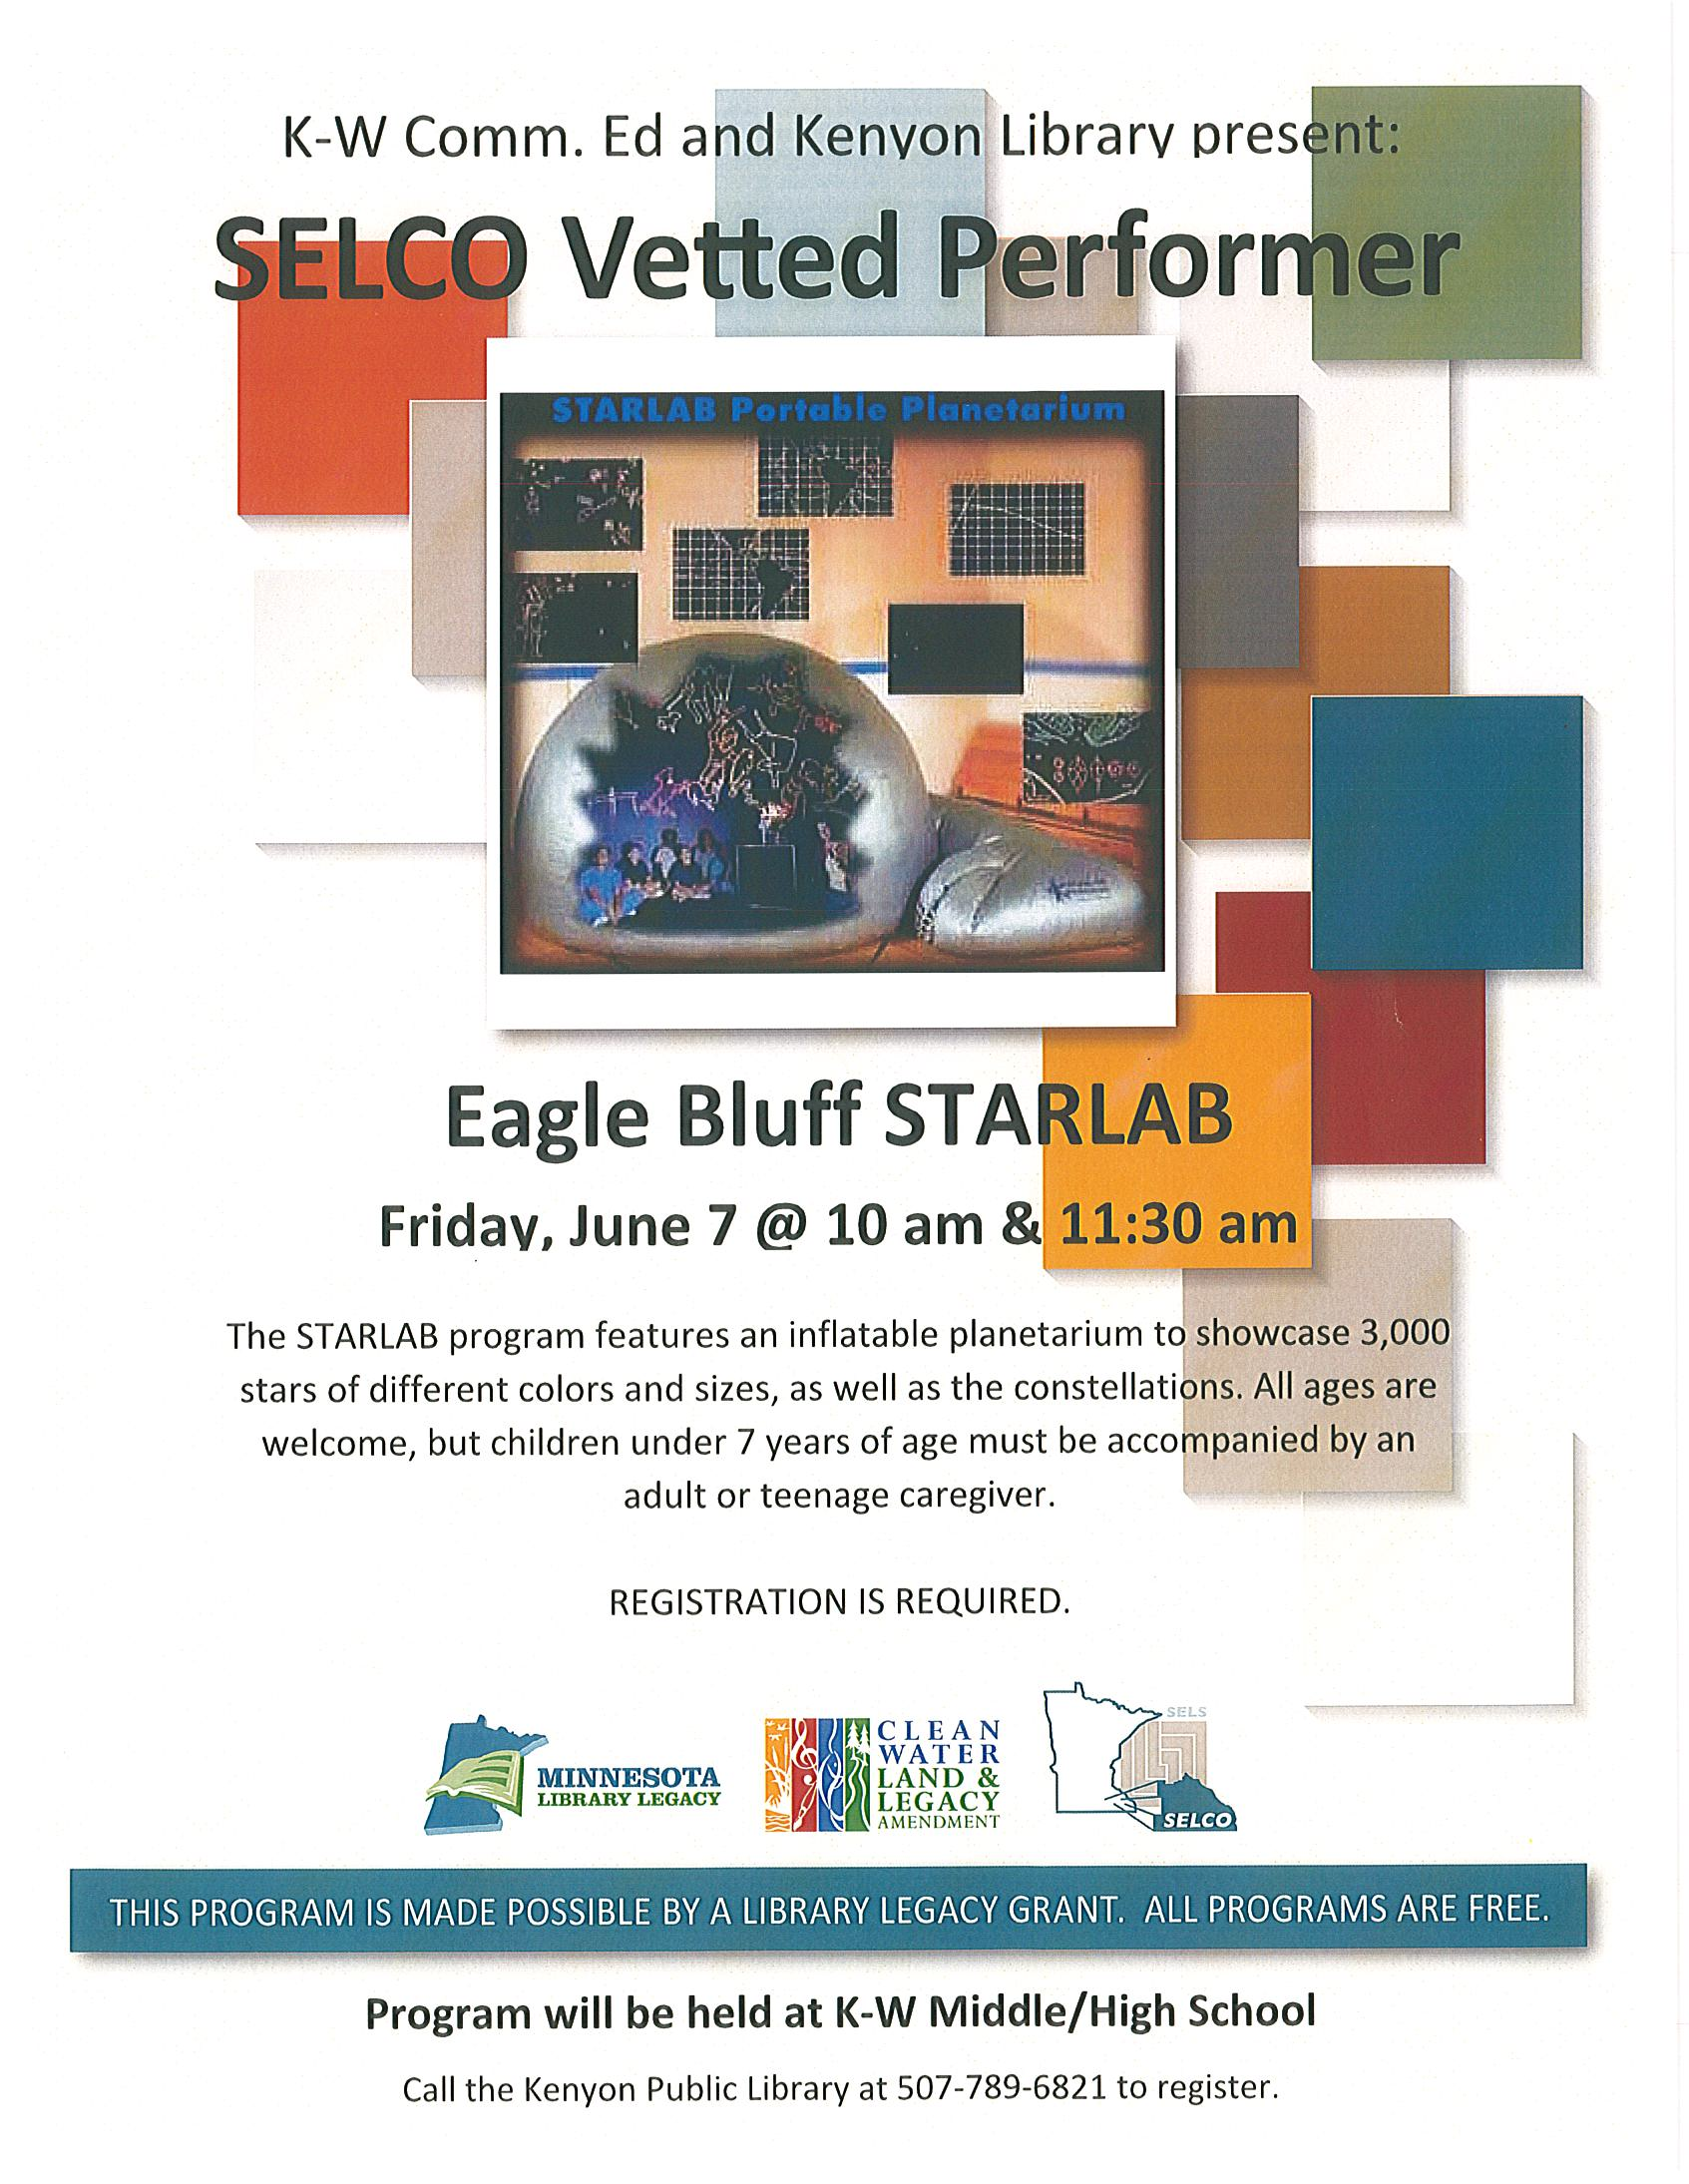 Eagle Bluff Star Lab June 7 @ 10 am & 11:30 am